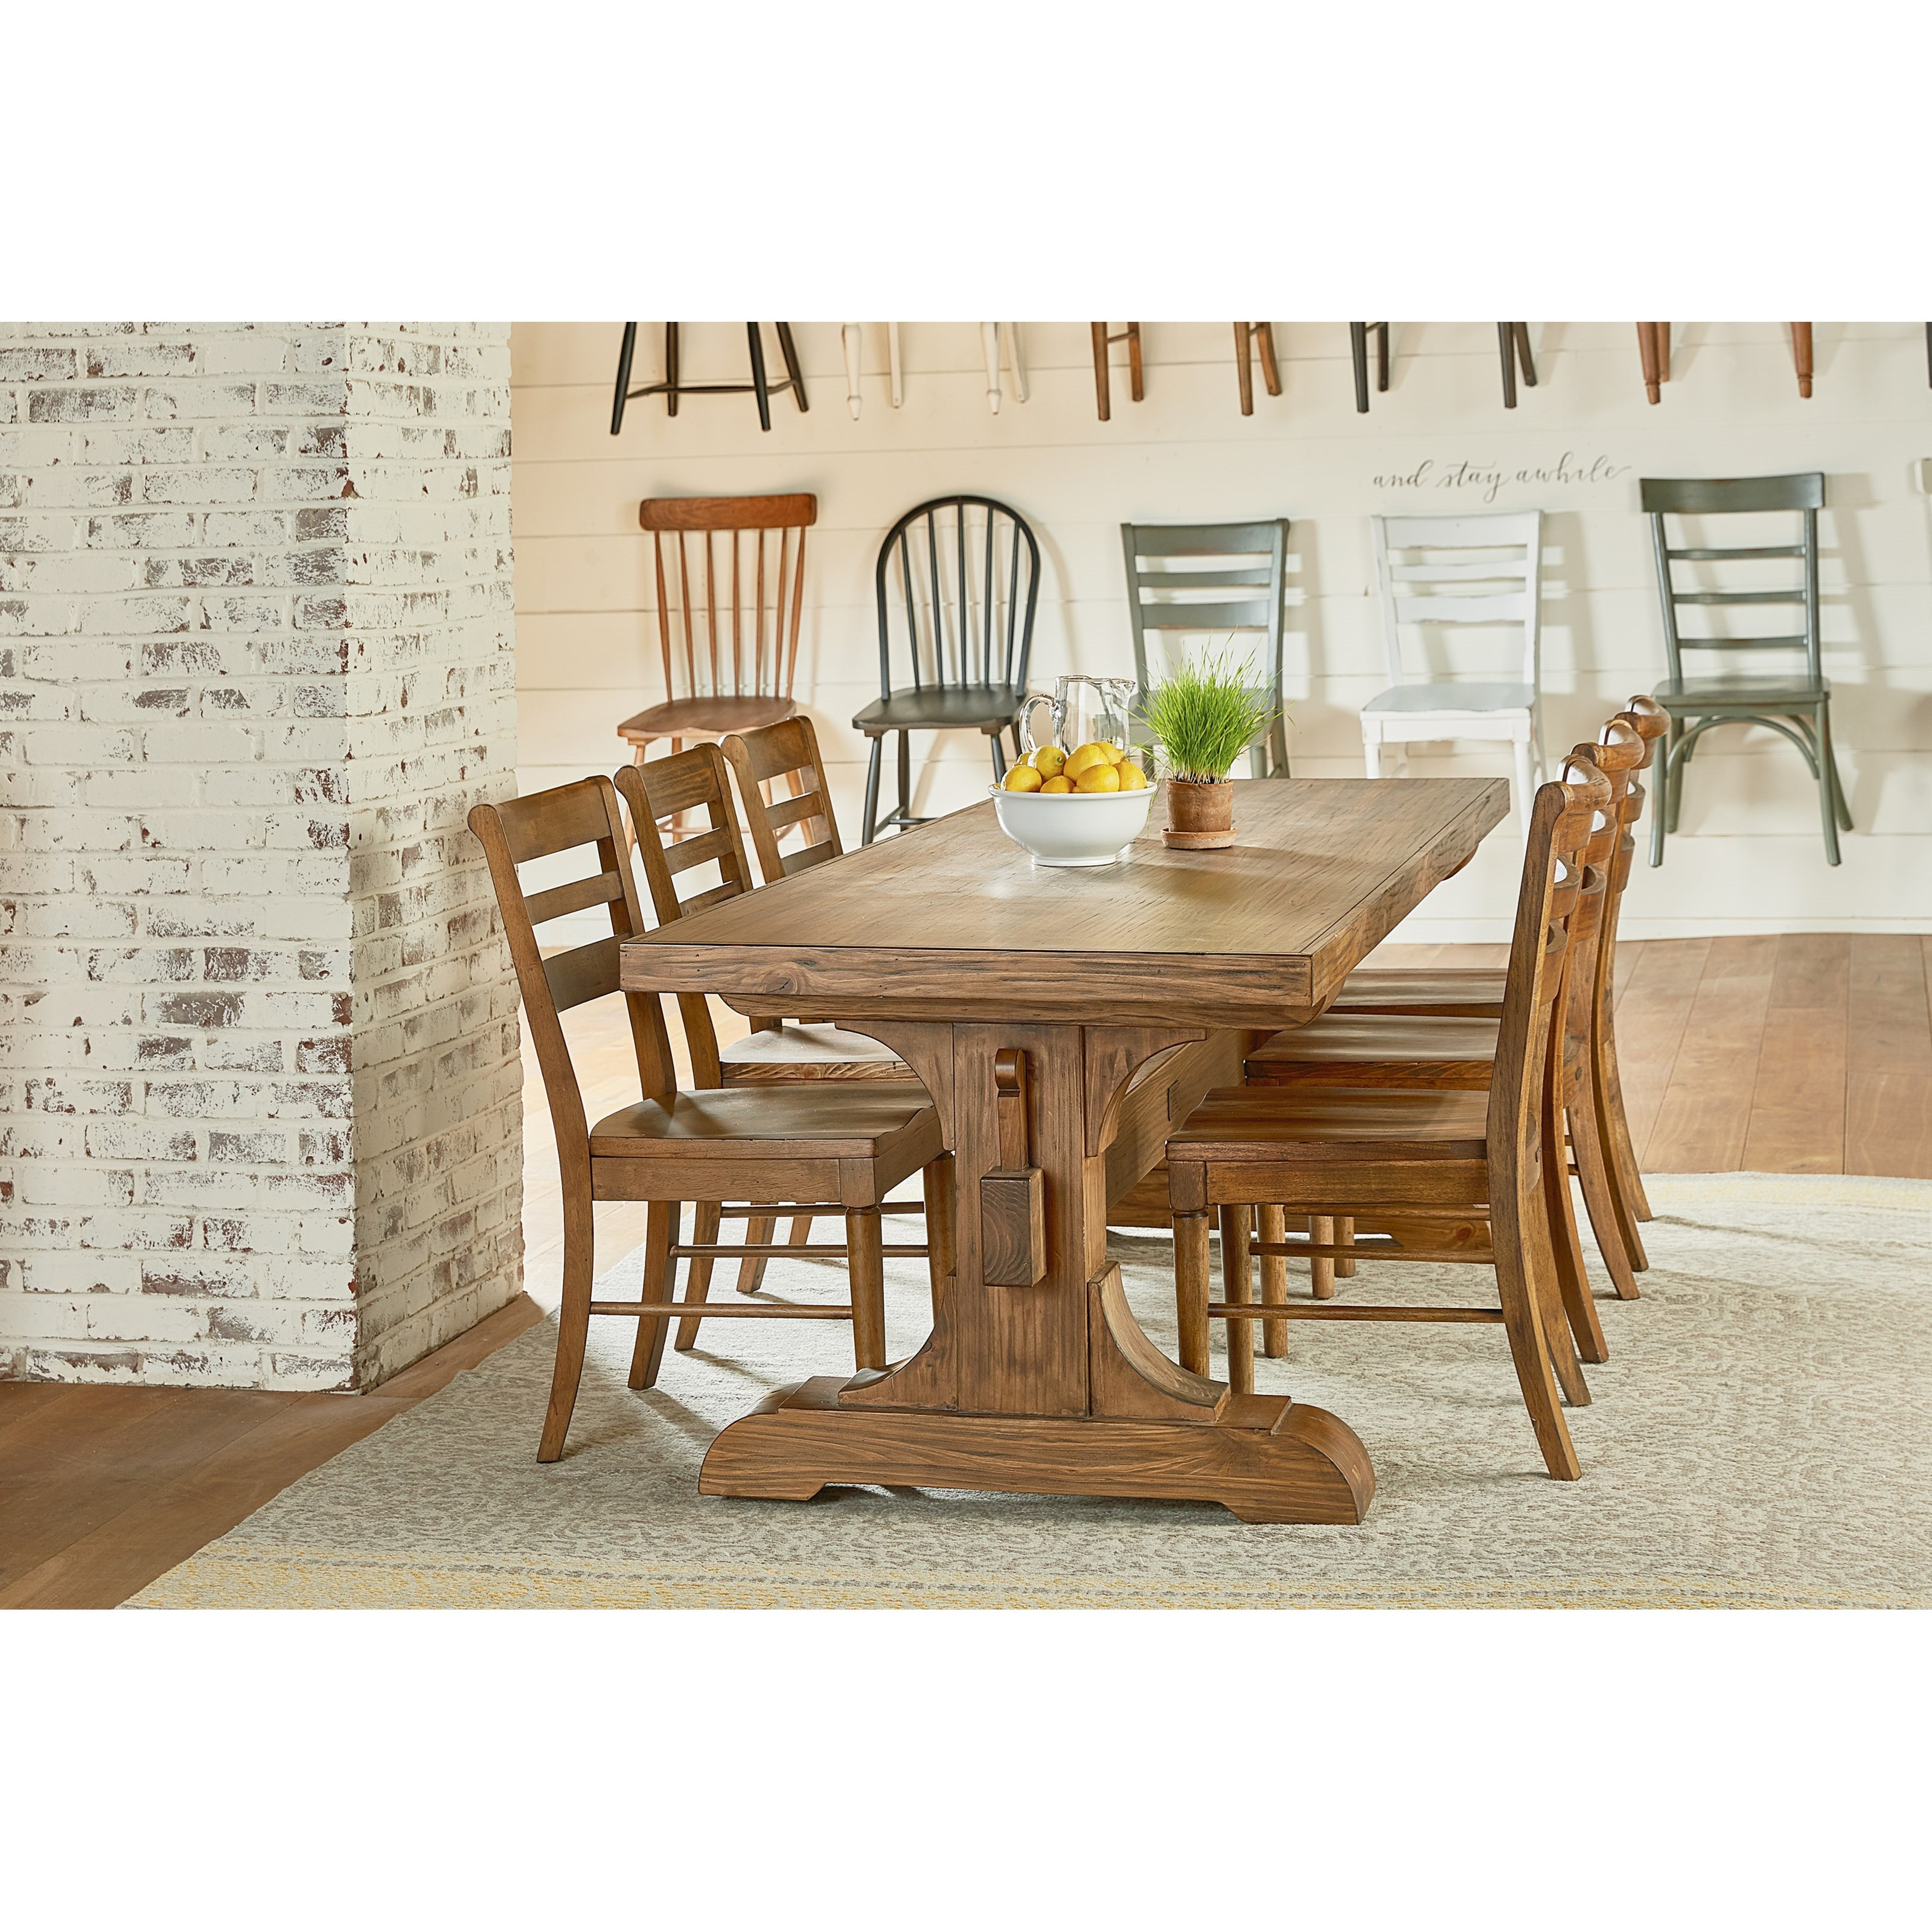 Keyed Trestle Dining Table By Magnolia Home Joanna Gaines